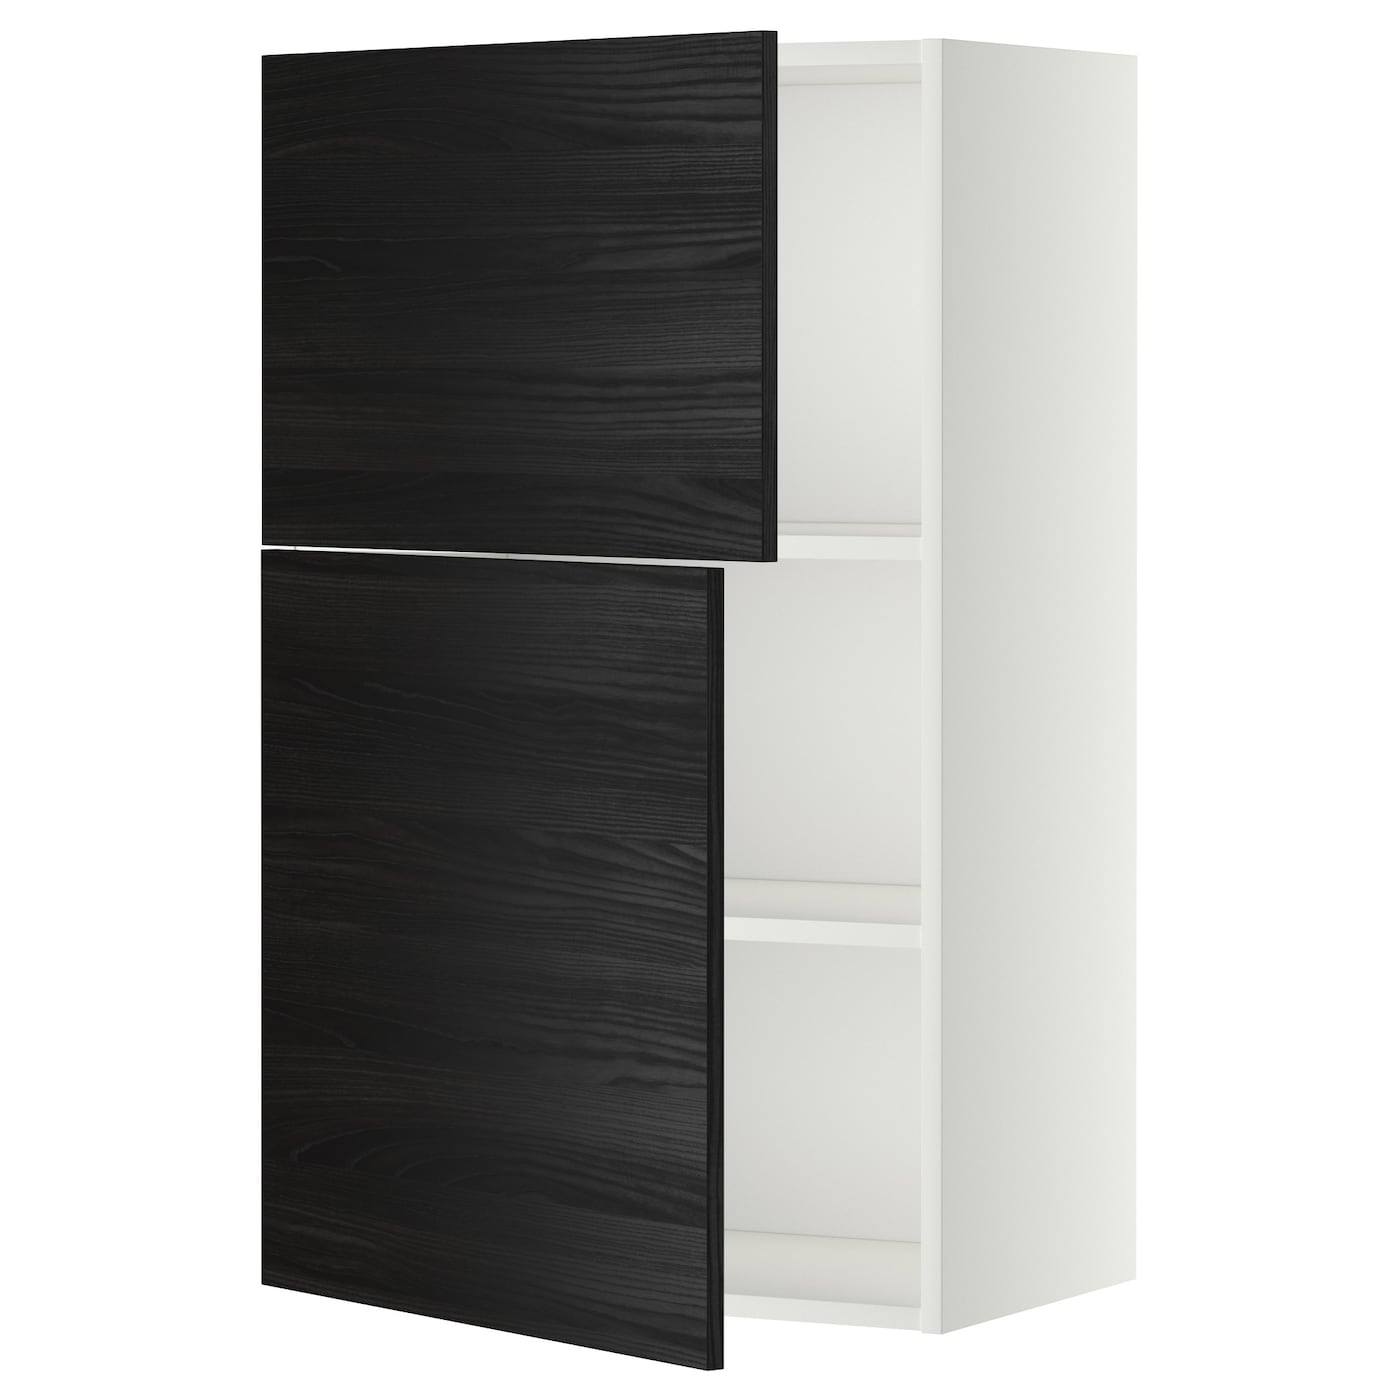 Metod Wall Cabinet With Shelves: METOD Wall Cabinet With Shelves/2 Doors White/tingsryd